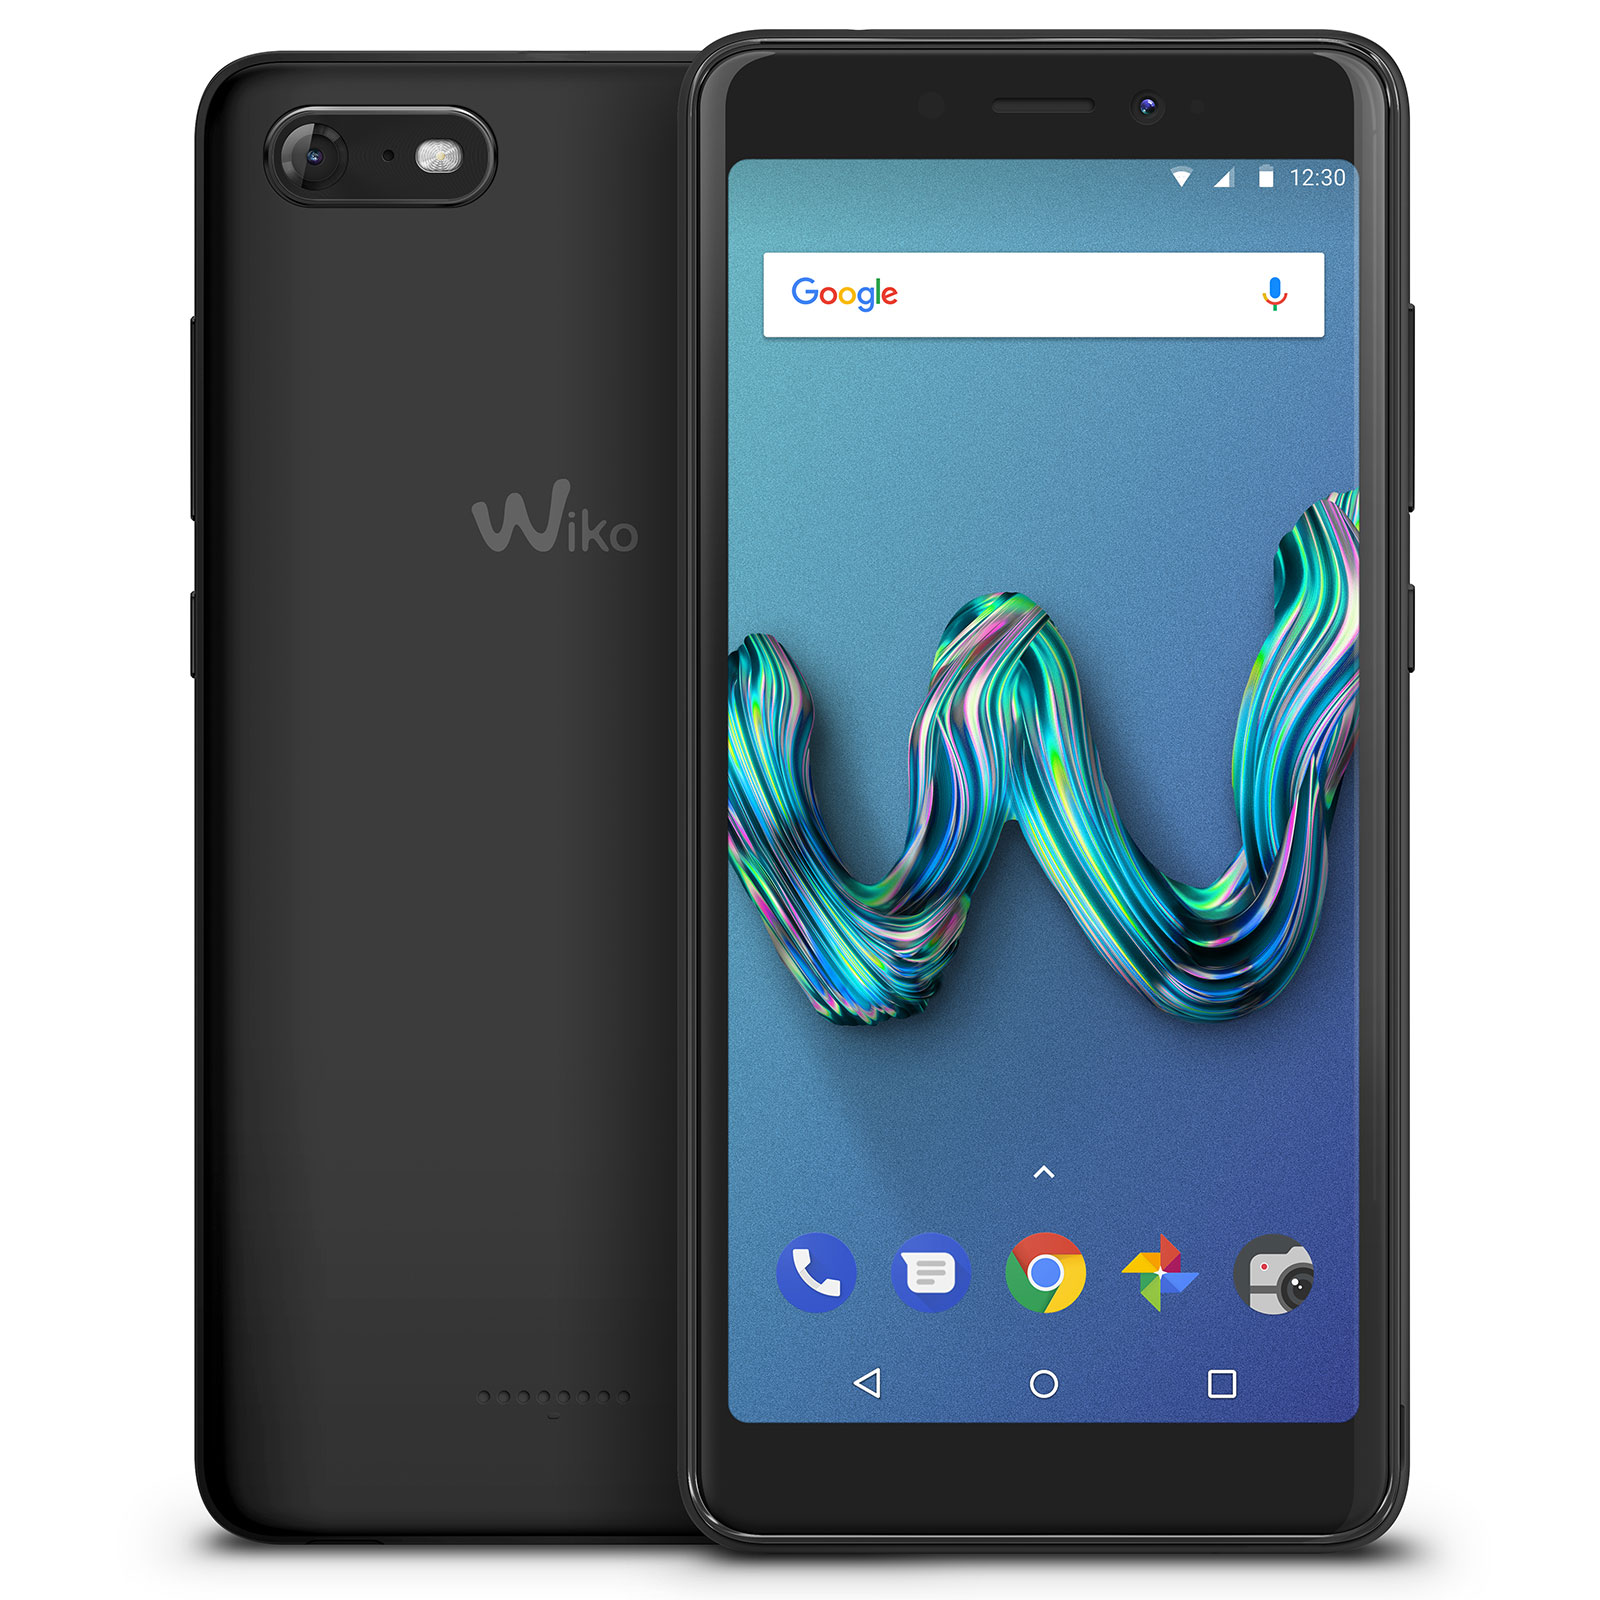 wiko tommy 3 anthracite coque bleen mobile smartphone wiko sur. Black Bedroom Furniture Sets. Home Design Ideas